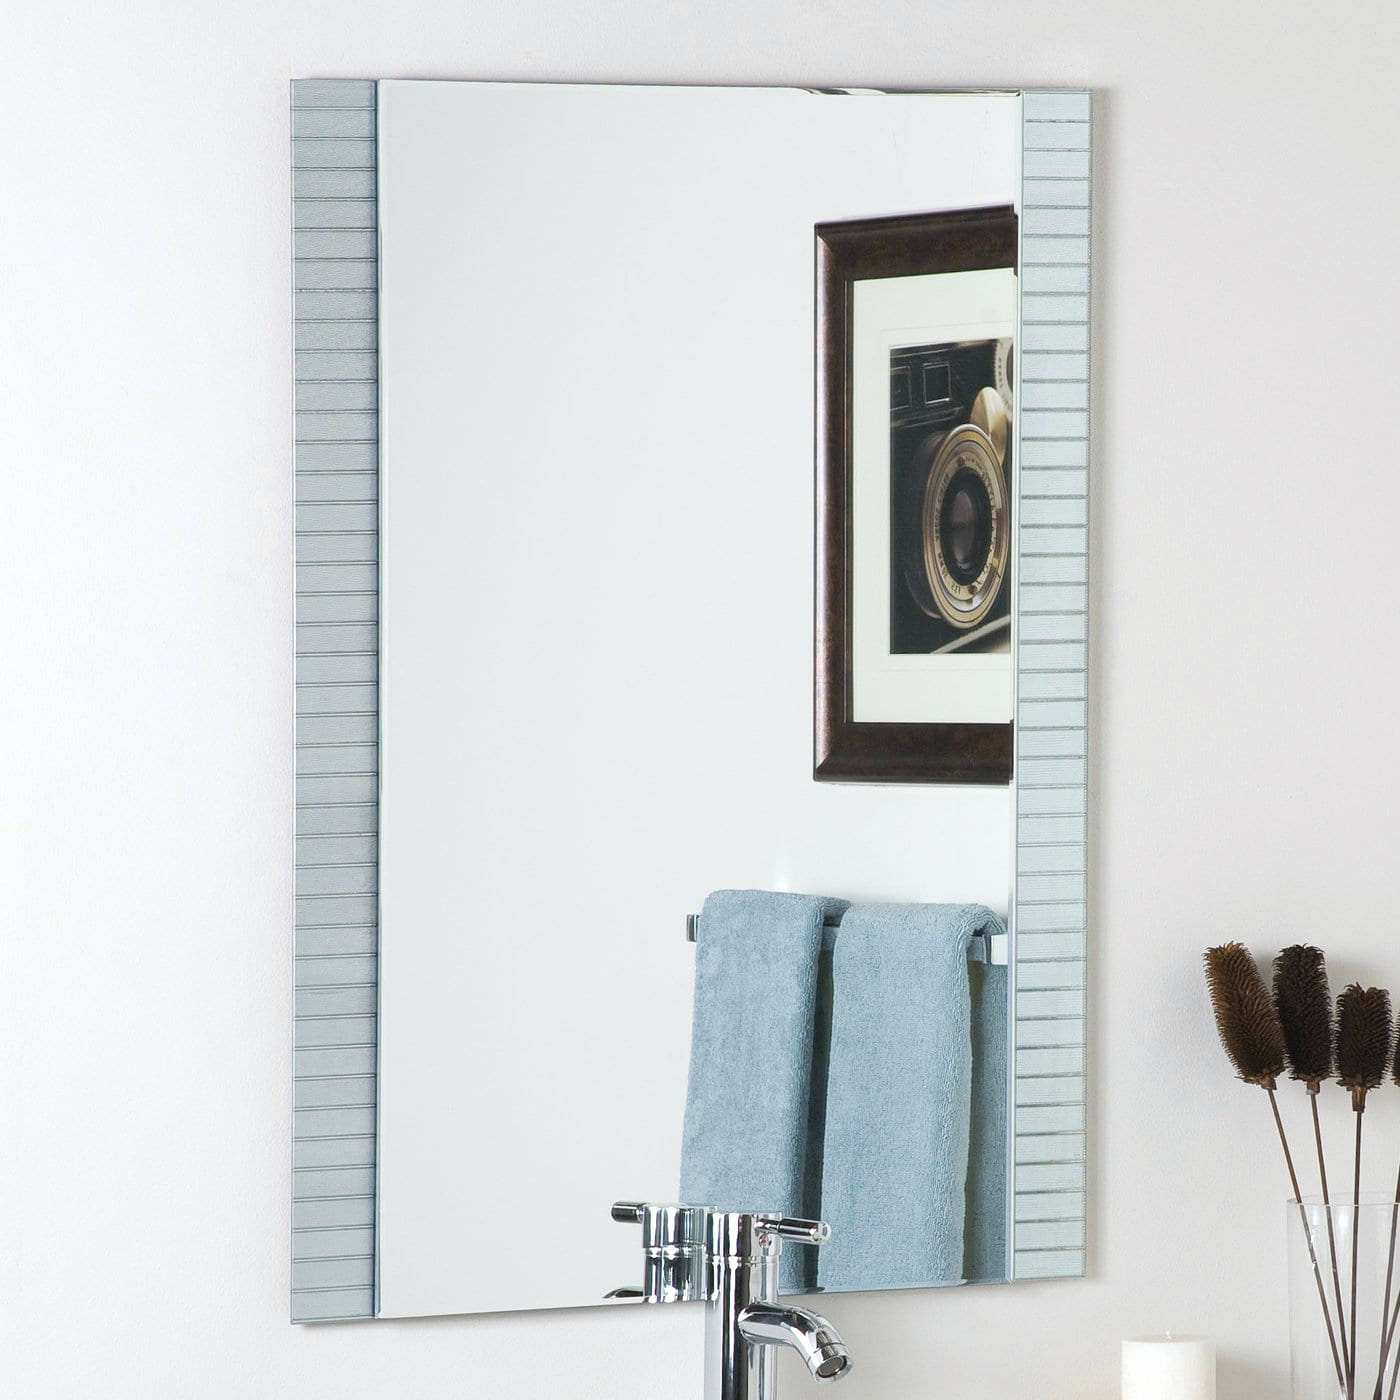 Wall Mirrors 25 80 X 36 In Horizontal Led Mirror With Touch Button